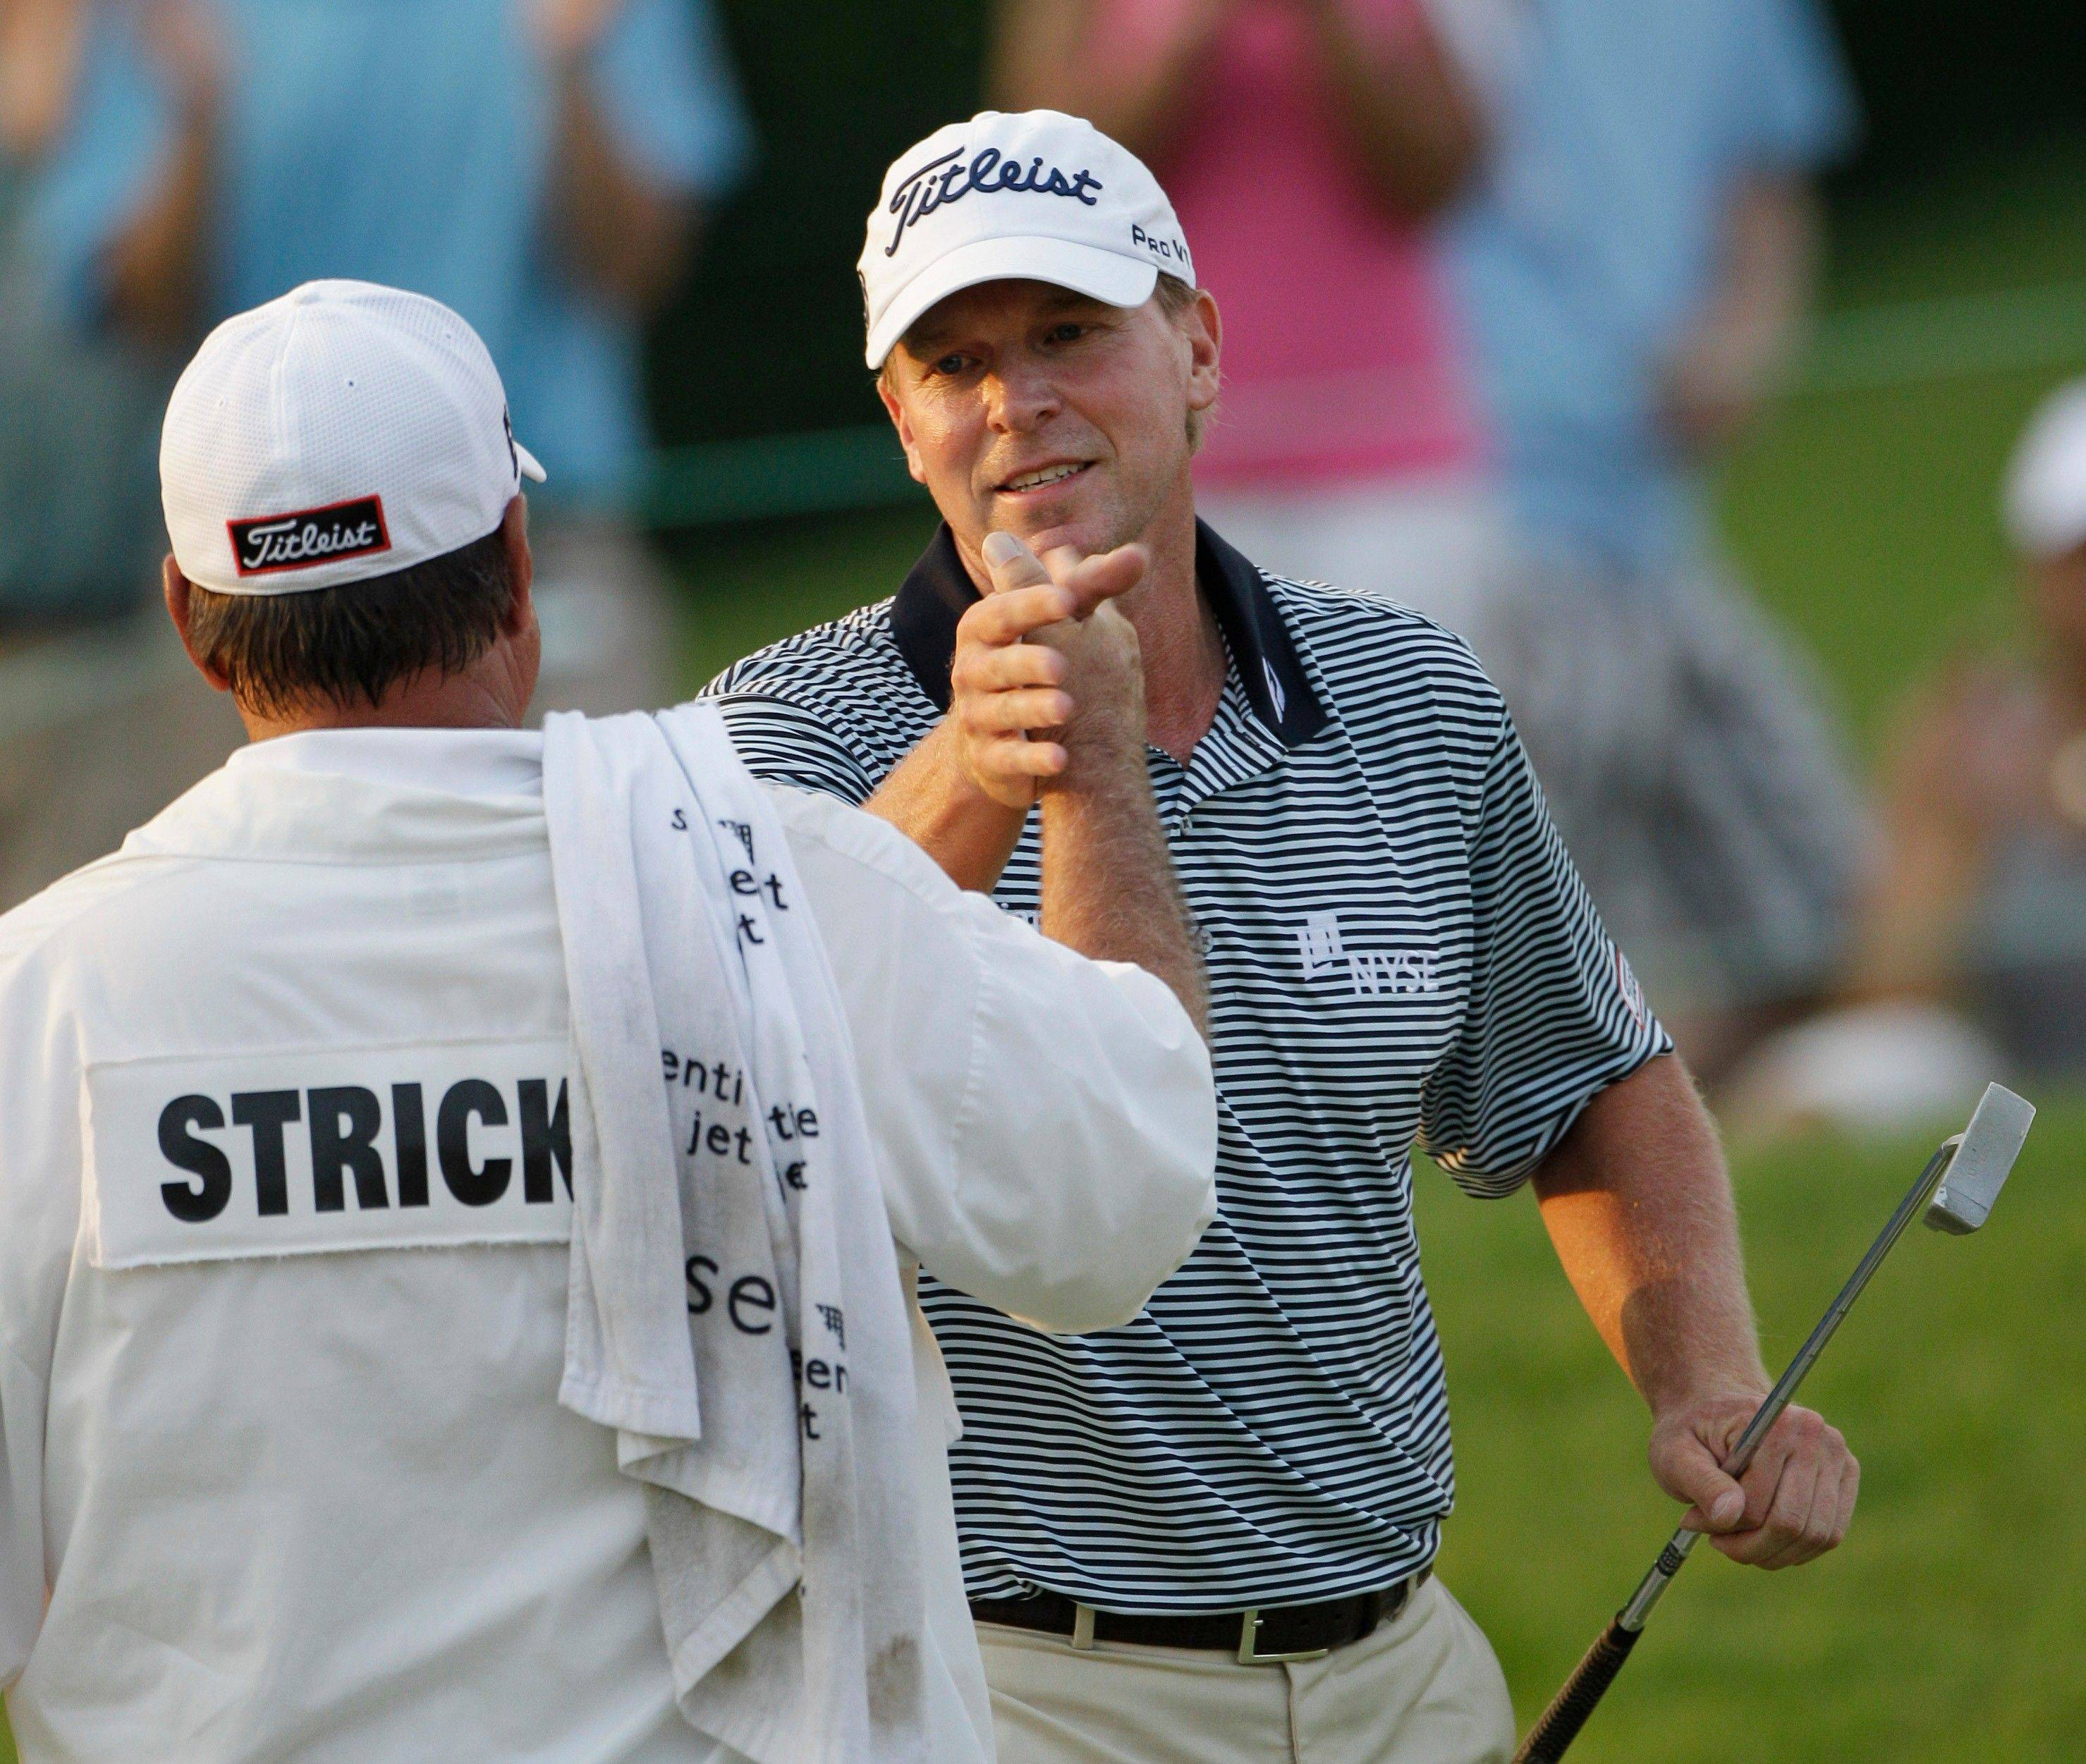 With the 10th PGA Tour victory of his career on Sunday at the Memorial Tournament, former Illini golfer Steve Stricker now is 11th on the all-time money list with more than $30.1 million in winnings. Among his titles: 1996 Kemper Open and the 1996 Western Open. Northwestern's Luke Donald, the current No. 1 player in the world, is 24th on the career list at $22.1 million.